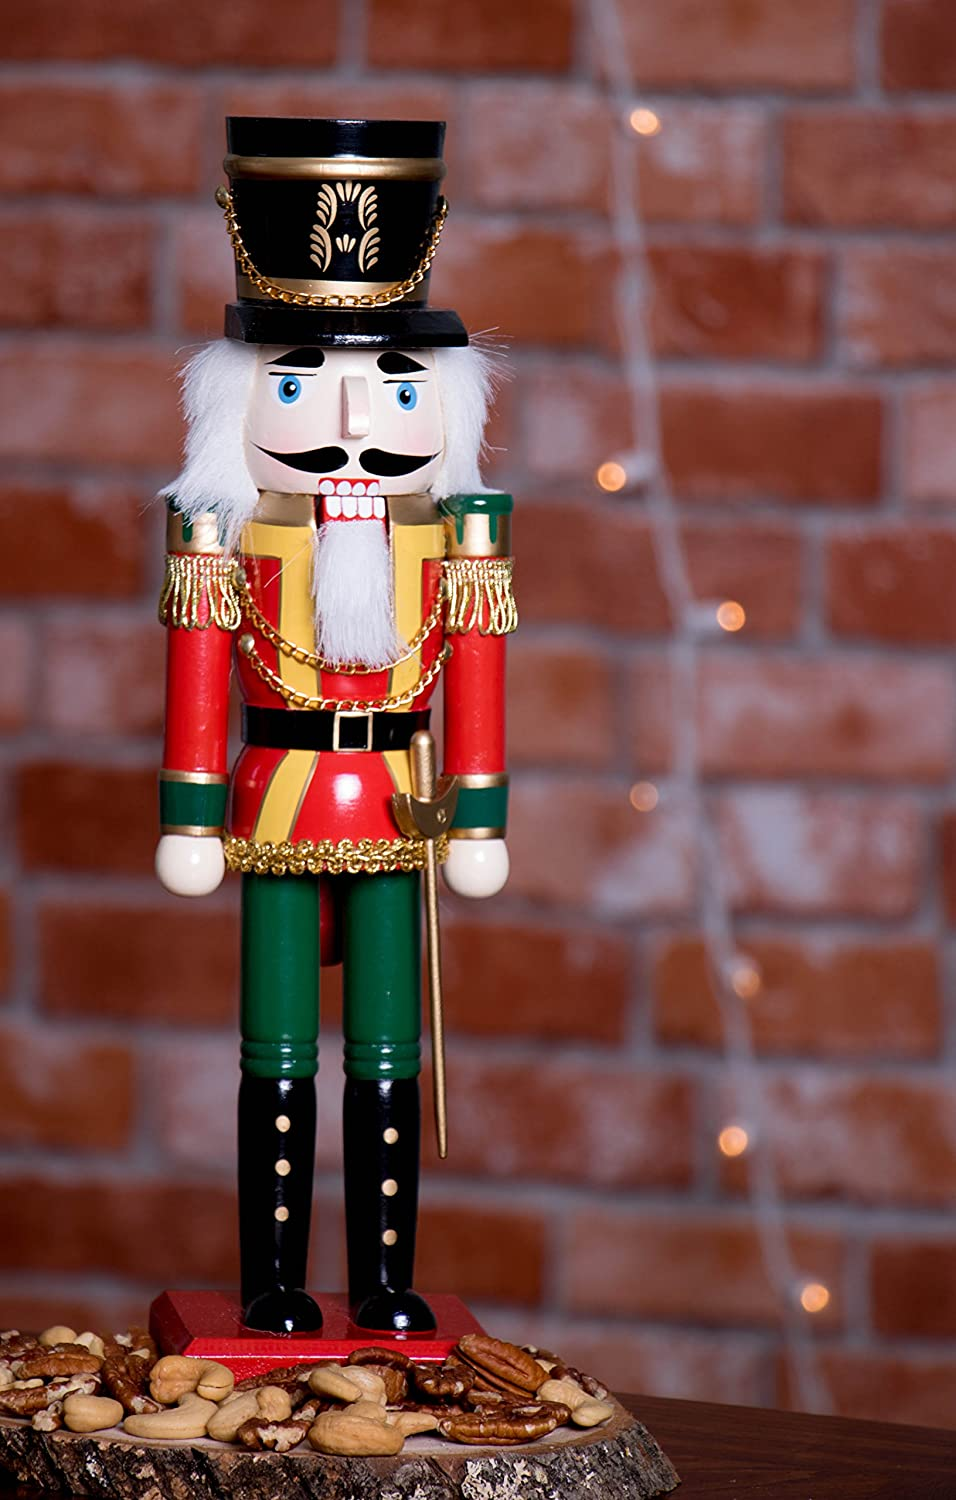 Classic Collectible Nutcracker 14 Tall Perfect for Shelves and Tables/… Perfect for Any Decor Theme Festive Christmas Decor Traditional Wooden Soldier Nutcracker with Sword| Red and Green